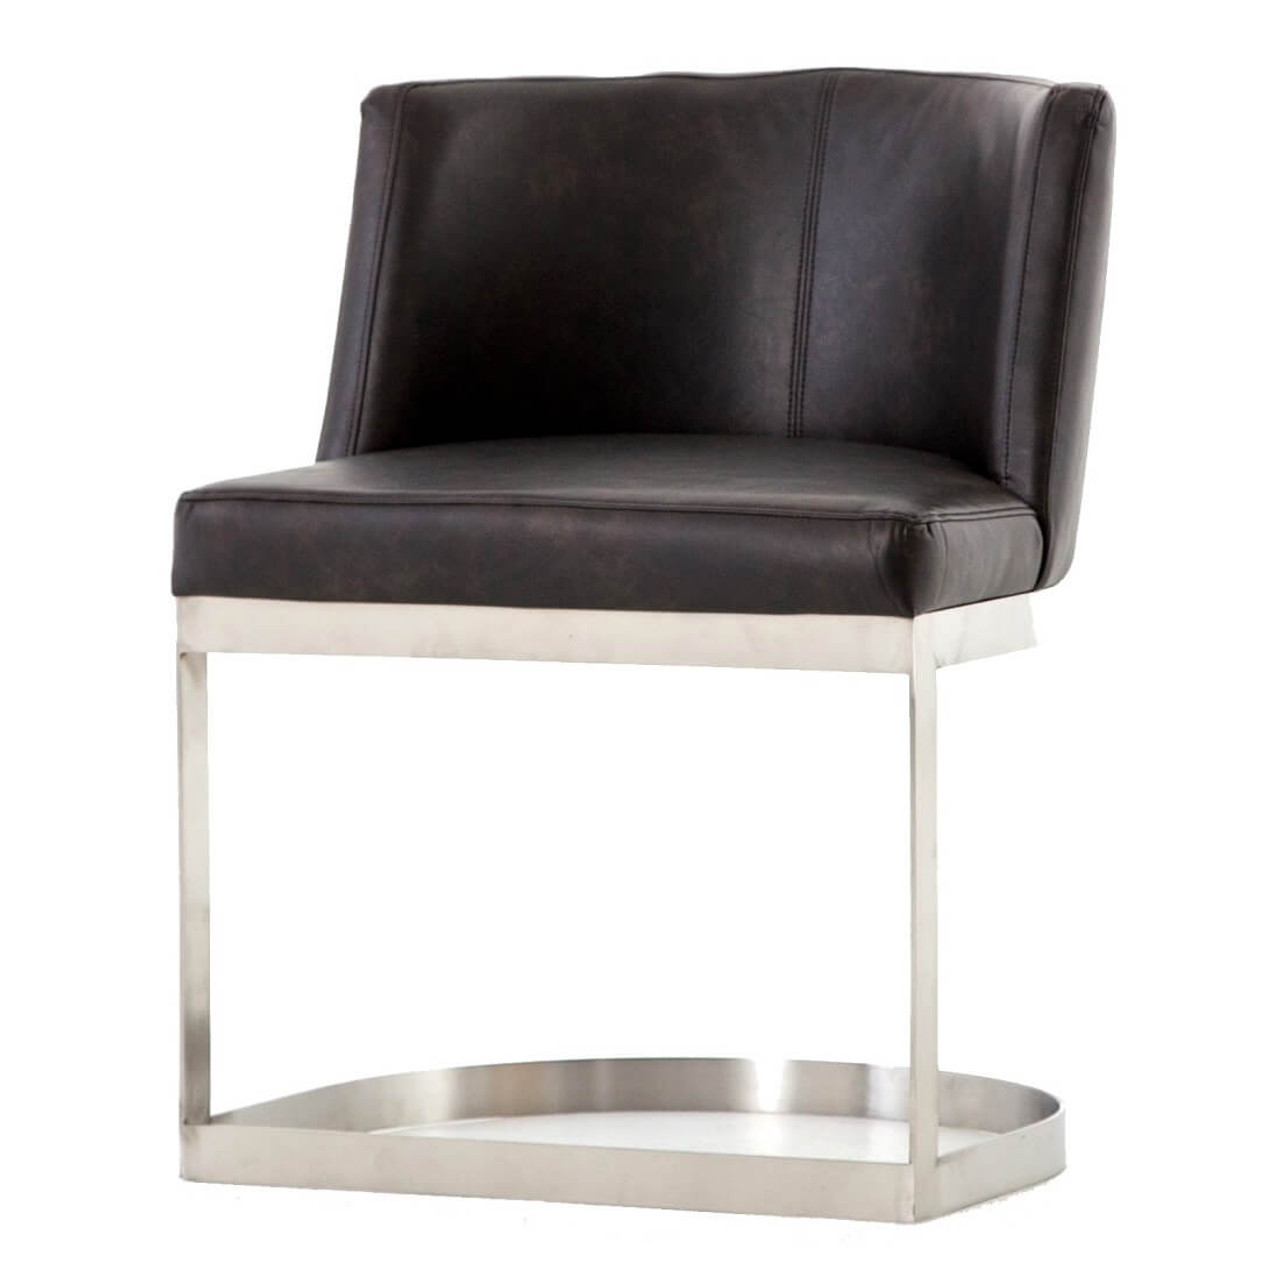 modern leather dining chairs with arms hans wegner ch25 chair wexler black zin home fourhands